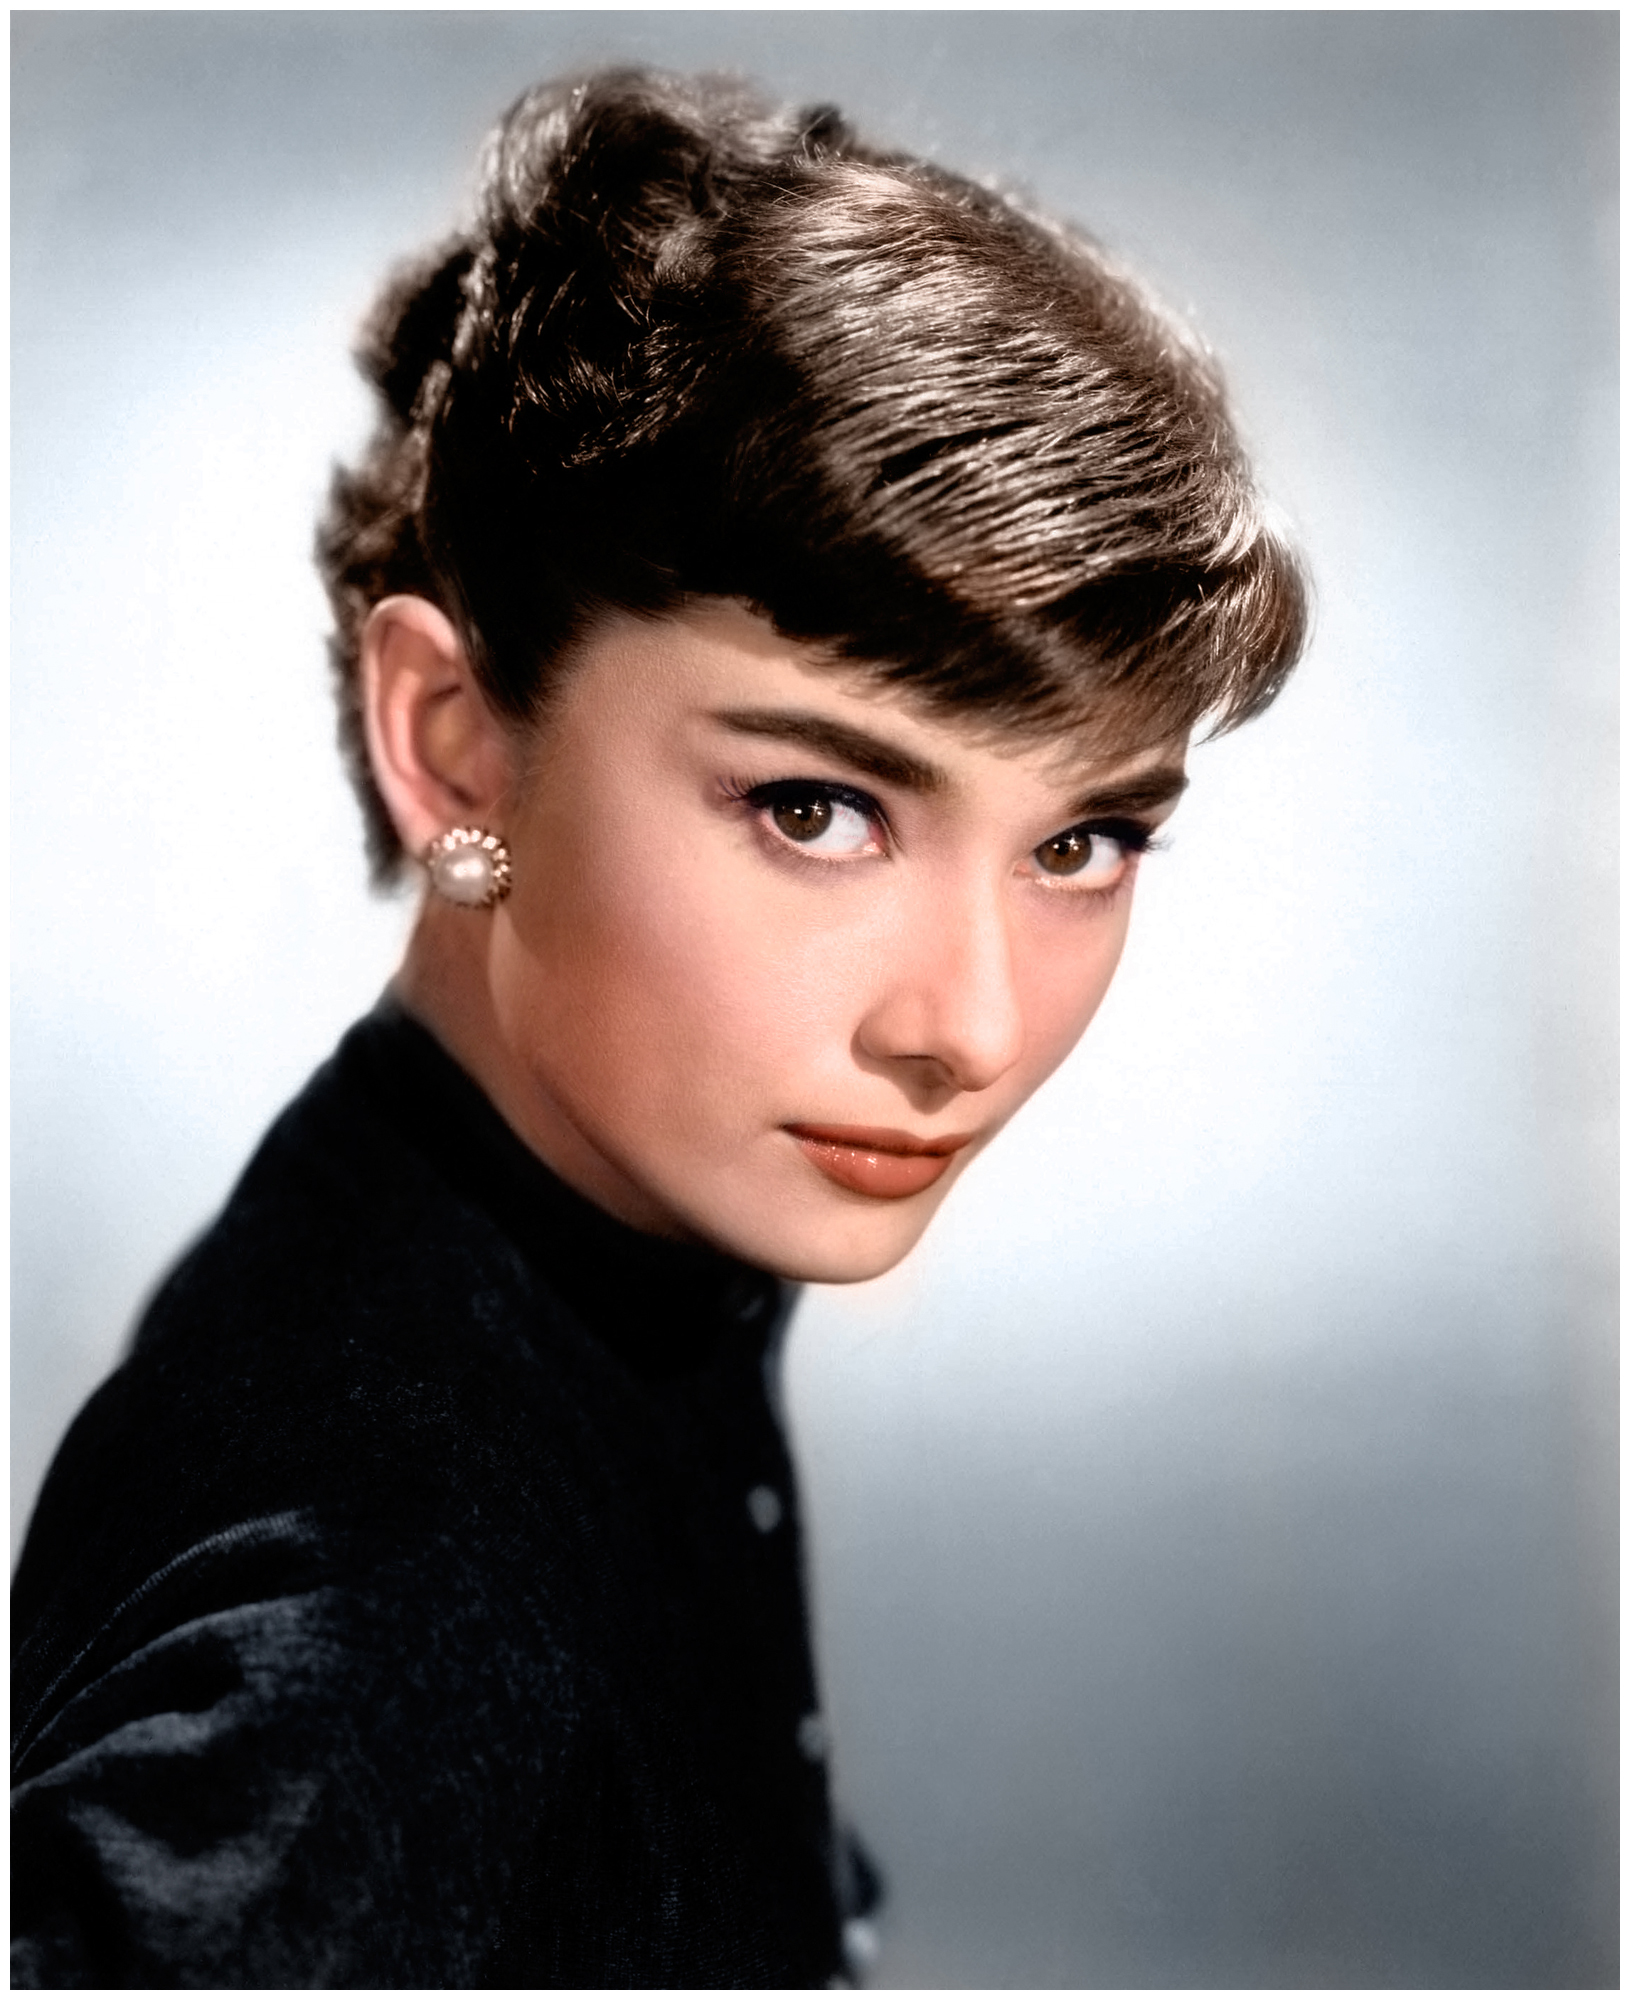 audrey hepburn - photo #14